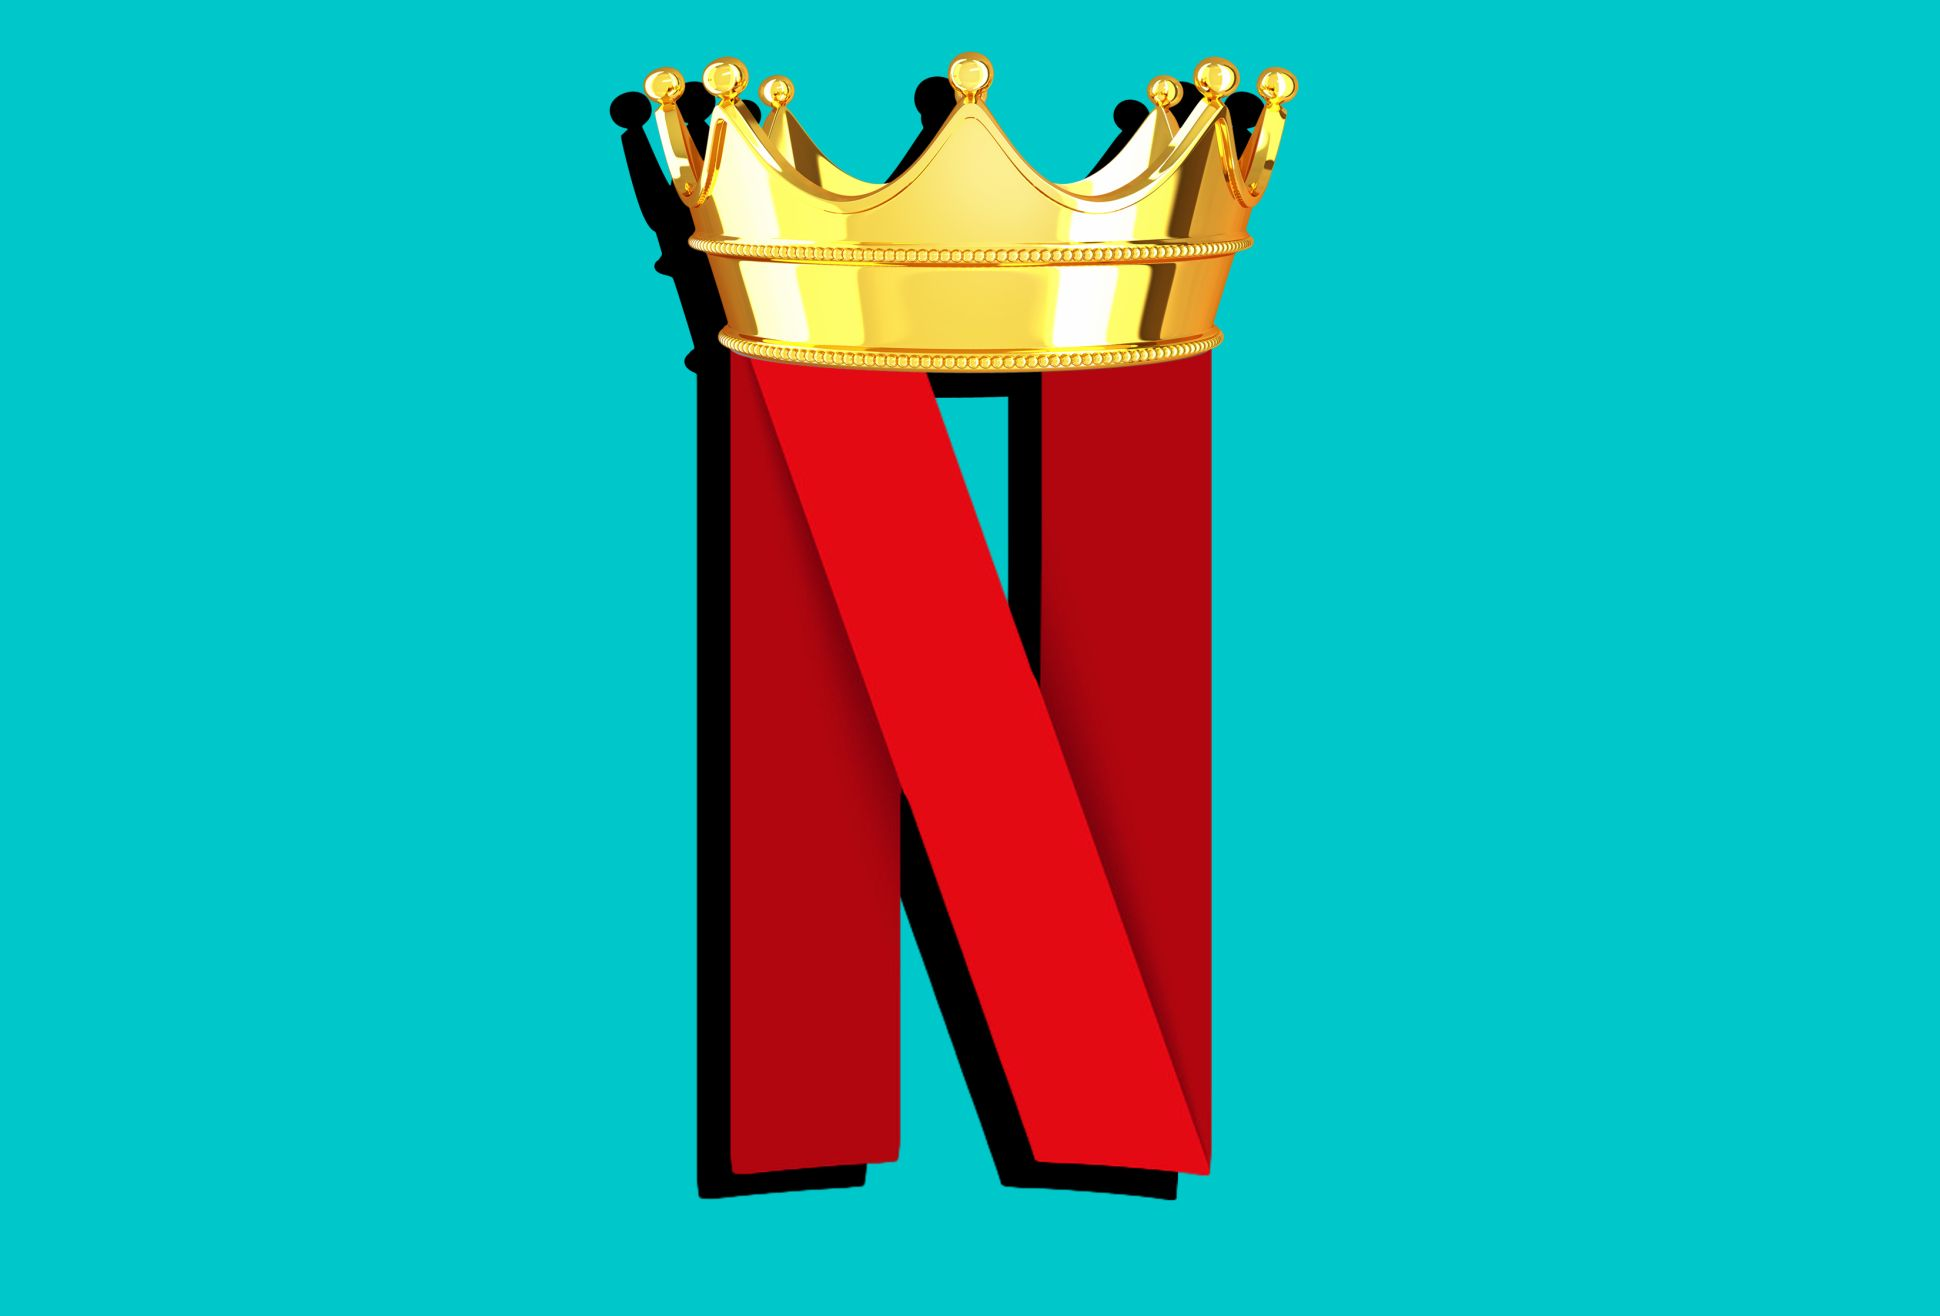 Netflix Letter Logo with Golden Crown Against Teal Turquoise Background Illustration